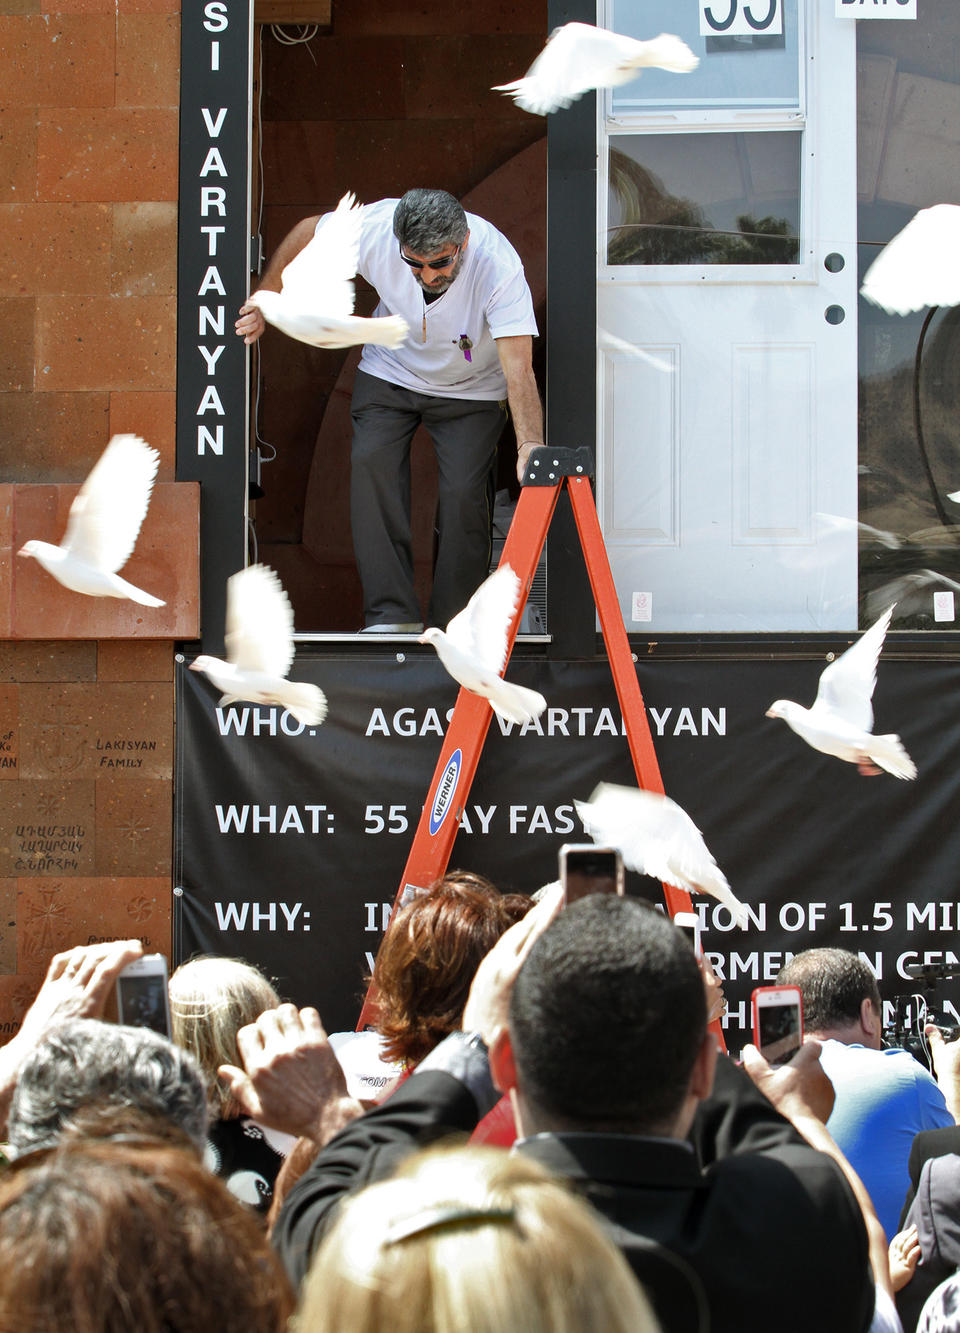 <p>Agasi Vartanyan emerges from a glass enclosureat St. Leon Cathedral in Burbank on Thursday, May 28, 2015, where he fasted for 55 days to commemorate the 100th anniversary of the Armenian Genocide.</p>